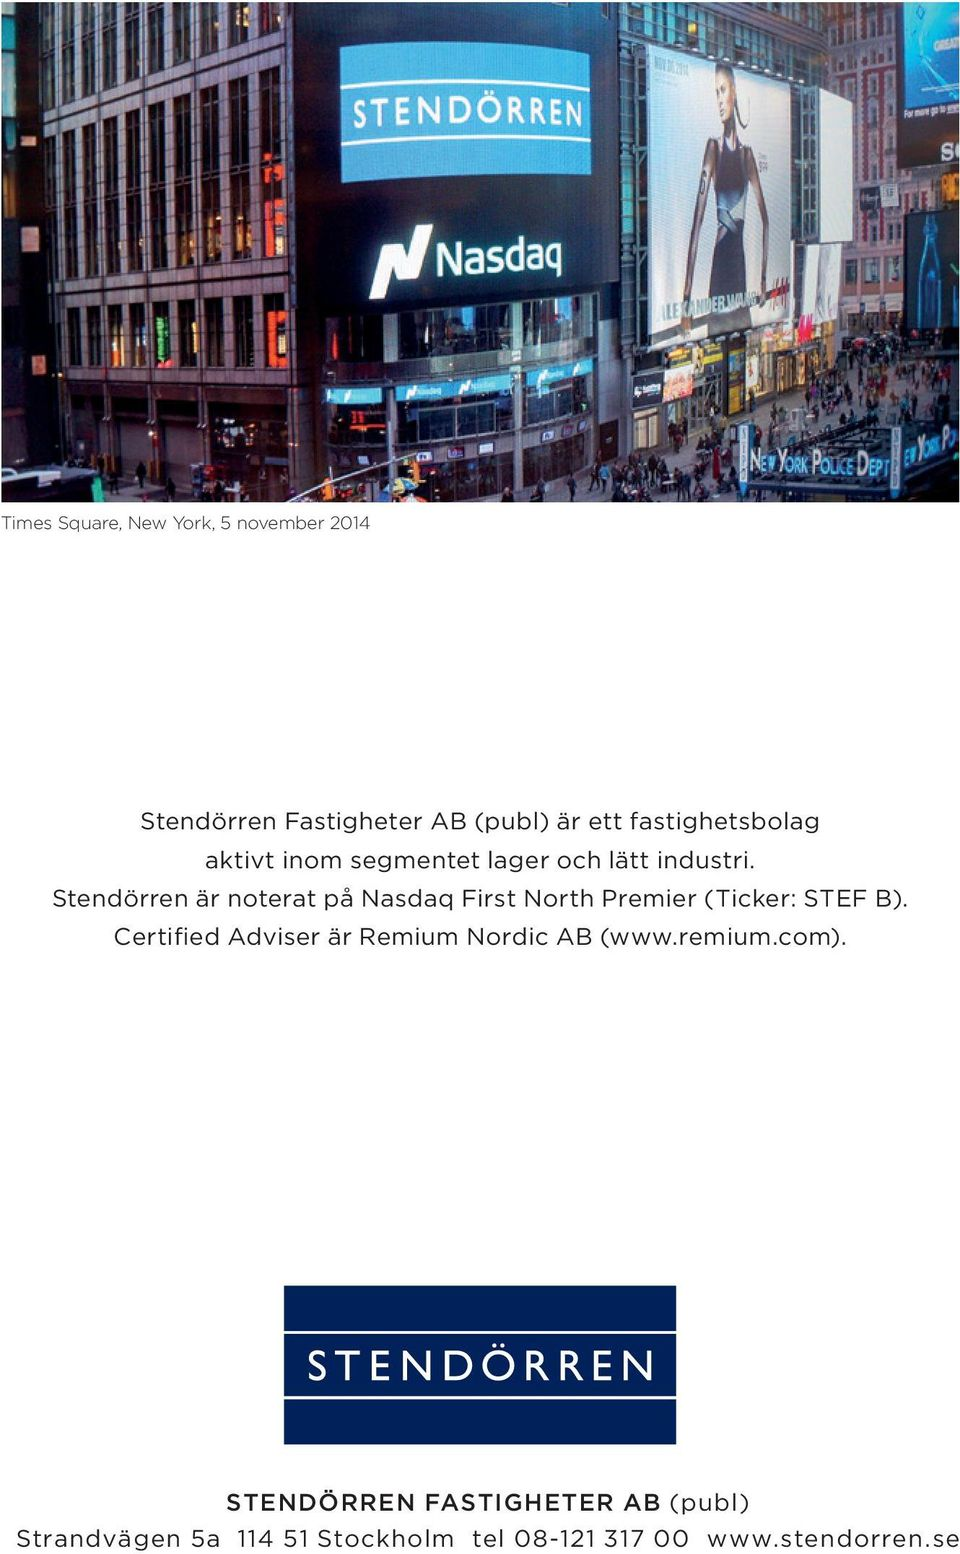 Stendörren är noterat på Nasdaq First North Premier (Ticker: STEF B).